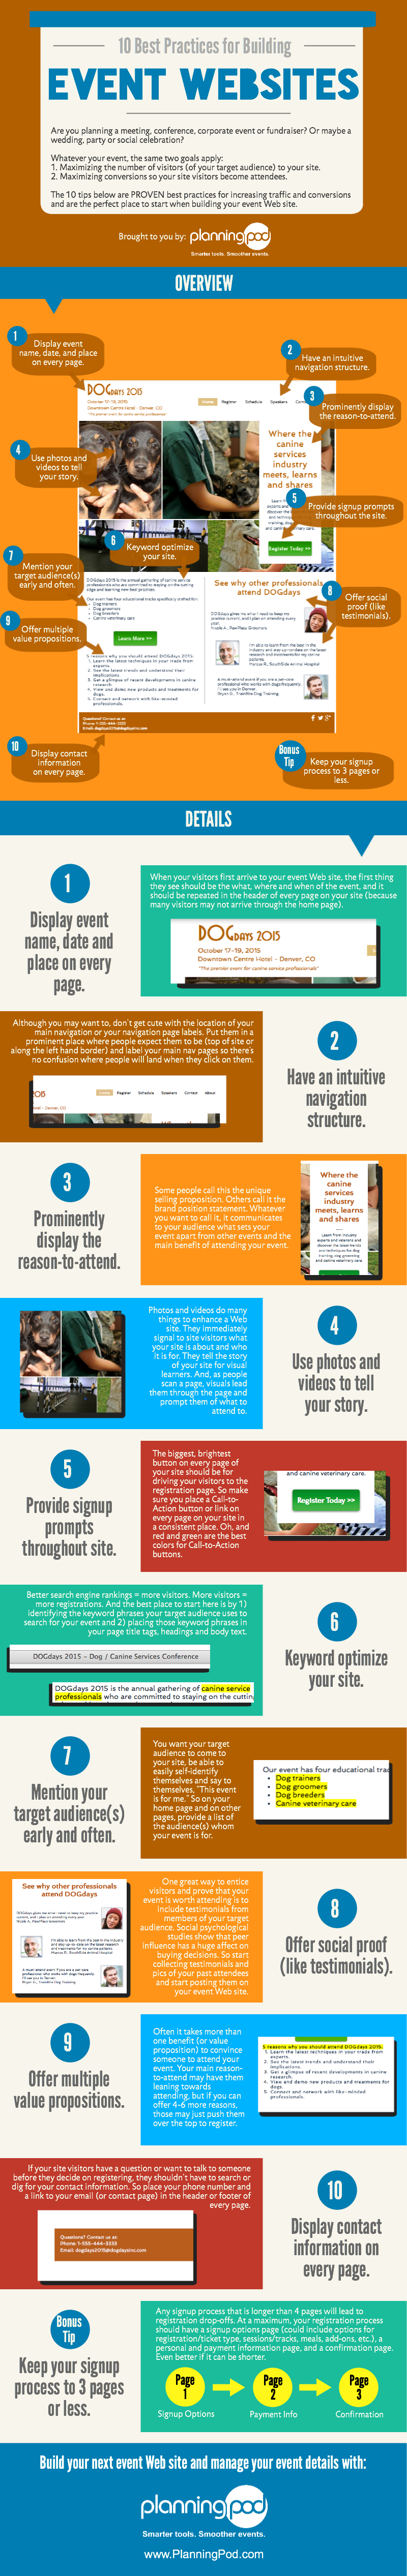 10 best practices for building event websites infographic Planner websites